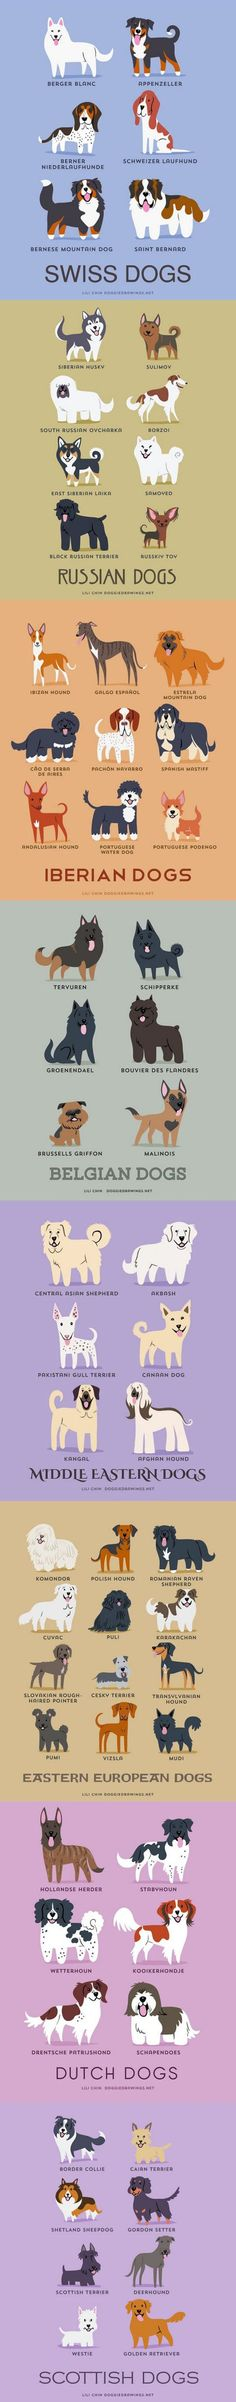 Race de chien. (They All Are Beautiful) (http://themetapicture.com/dogs-of-the-world/)